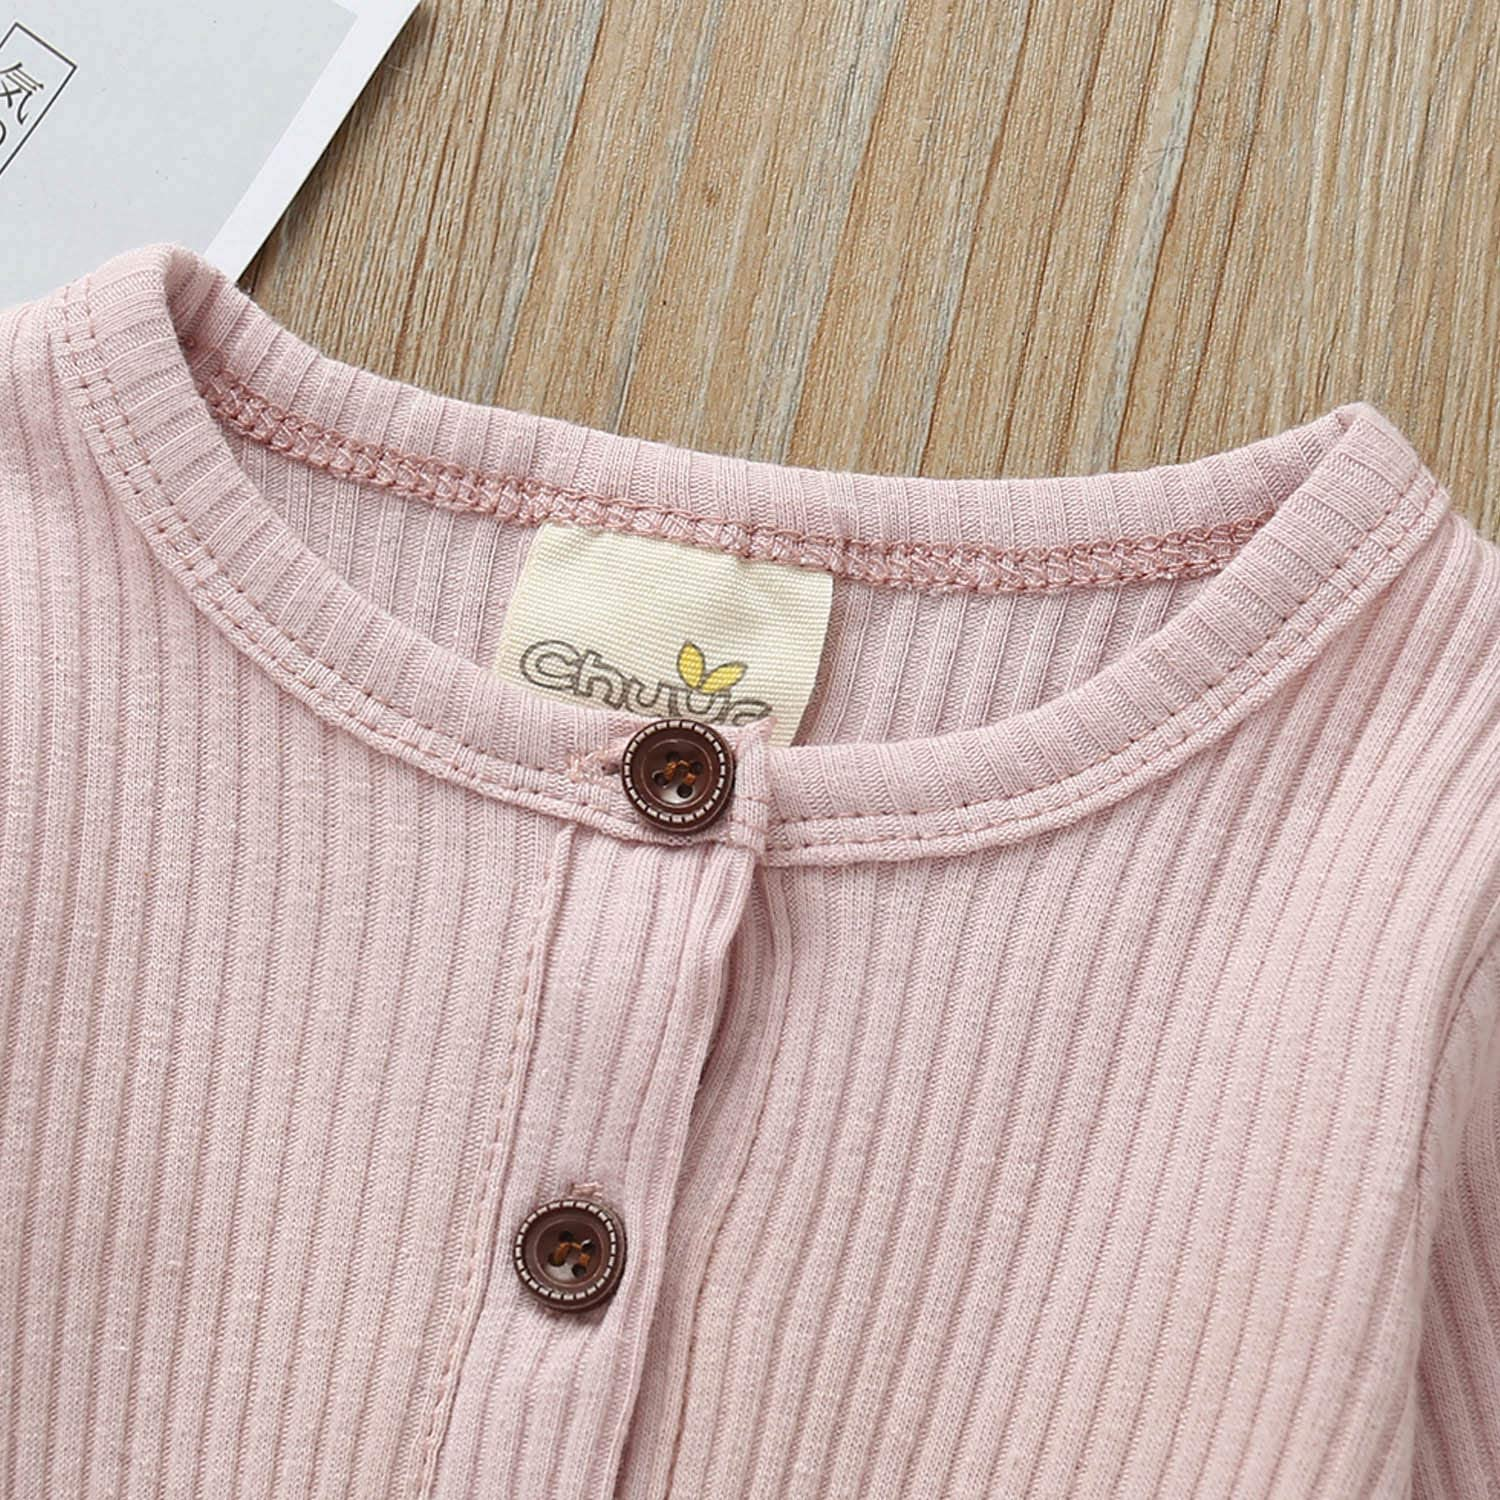 JBEELATE Newborn Baby Boys Girls Knit Jumpsuit Long Sleeve Button Down Romper One Piece Solid Bodysuit Winter Clothes Outfits